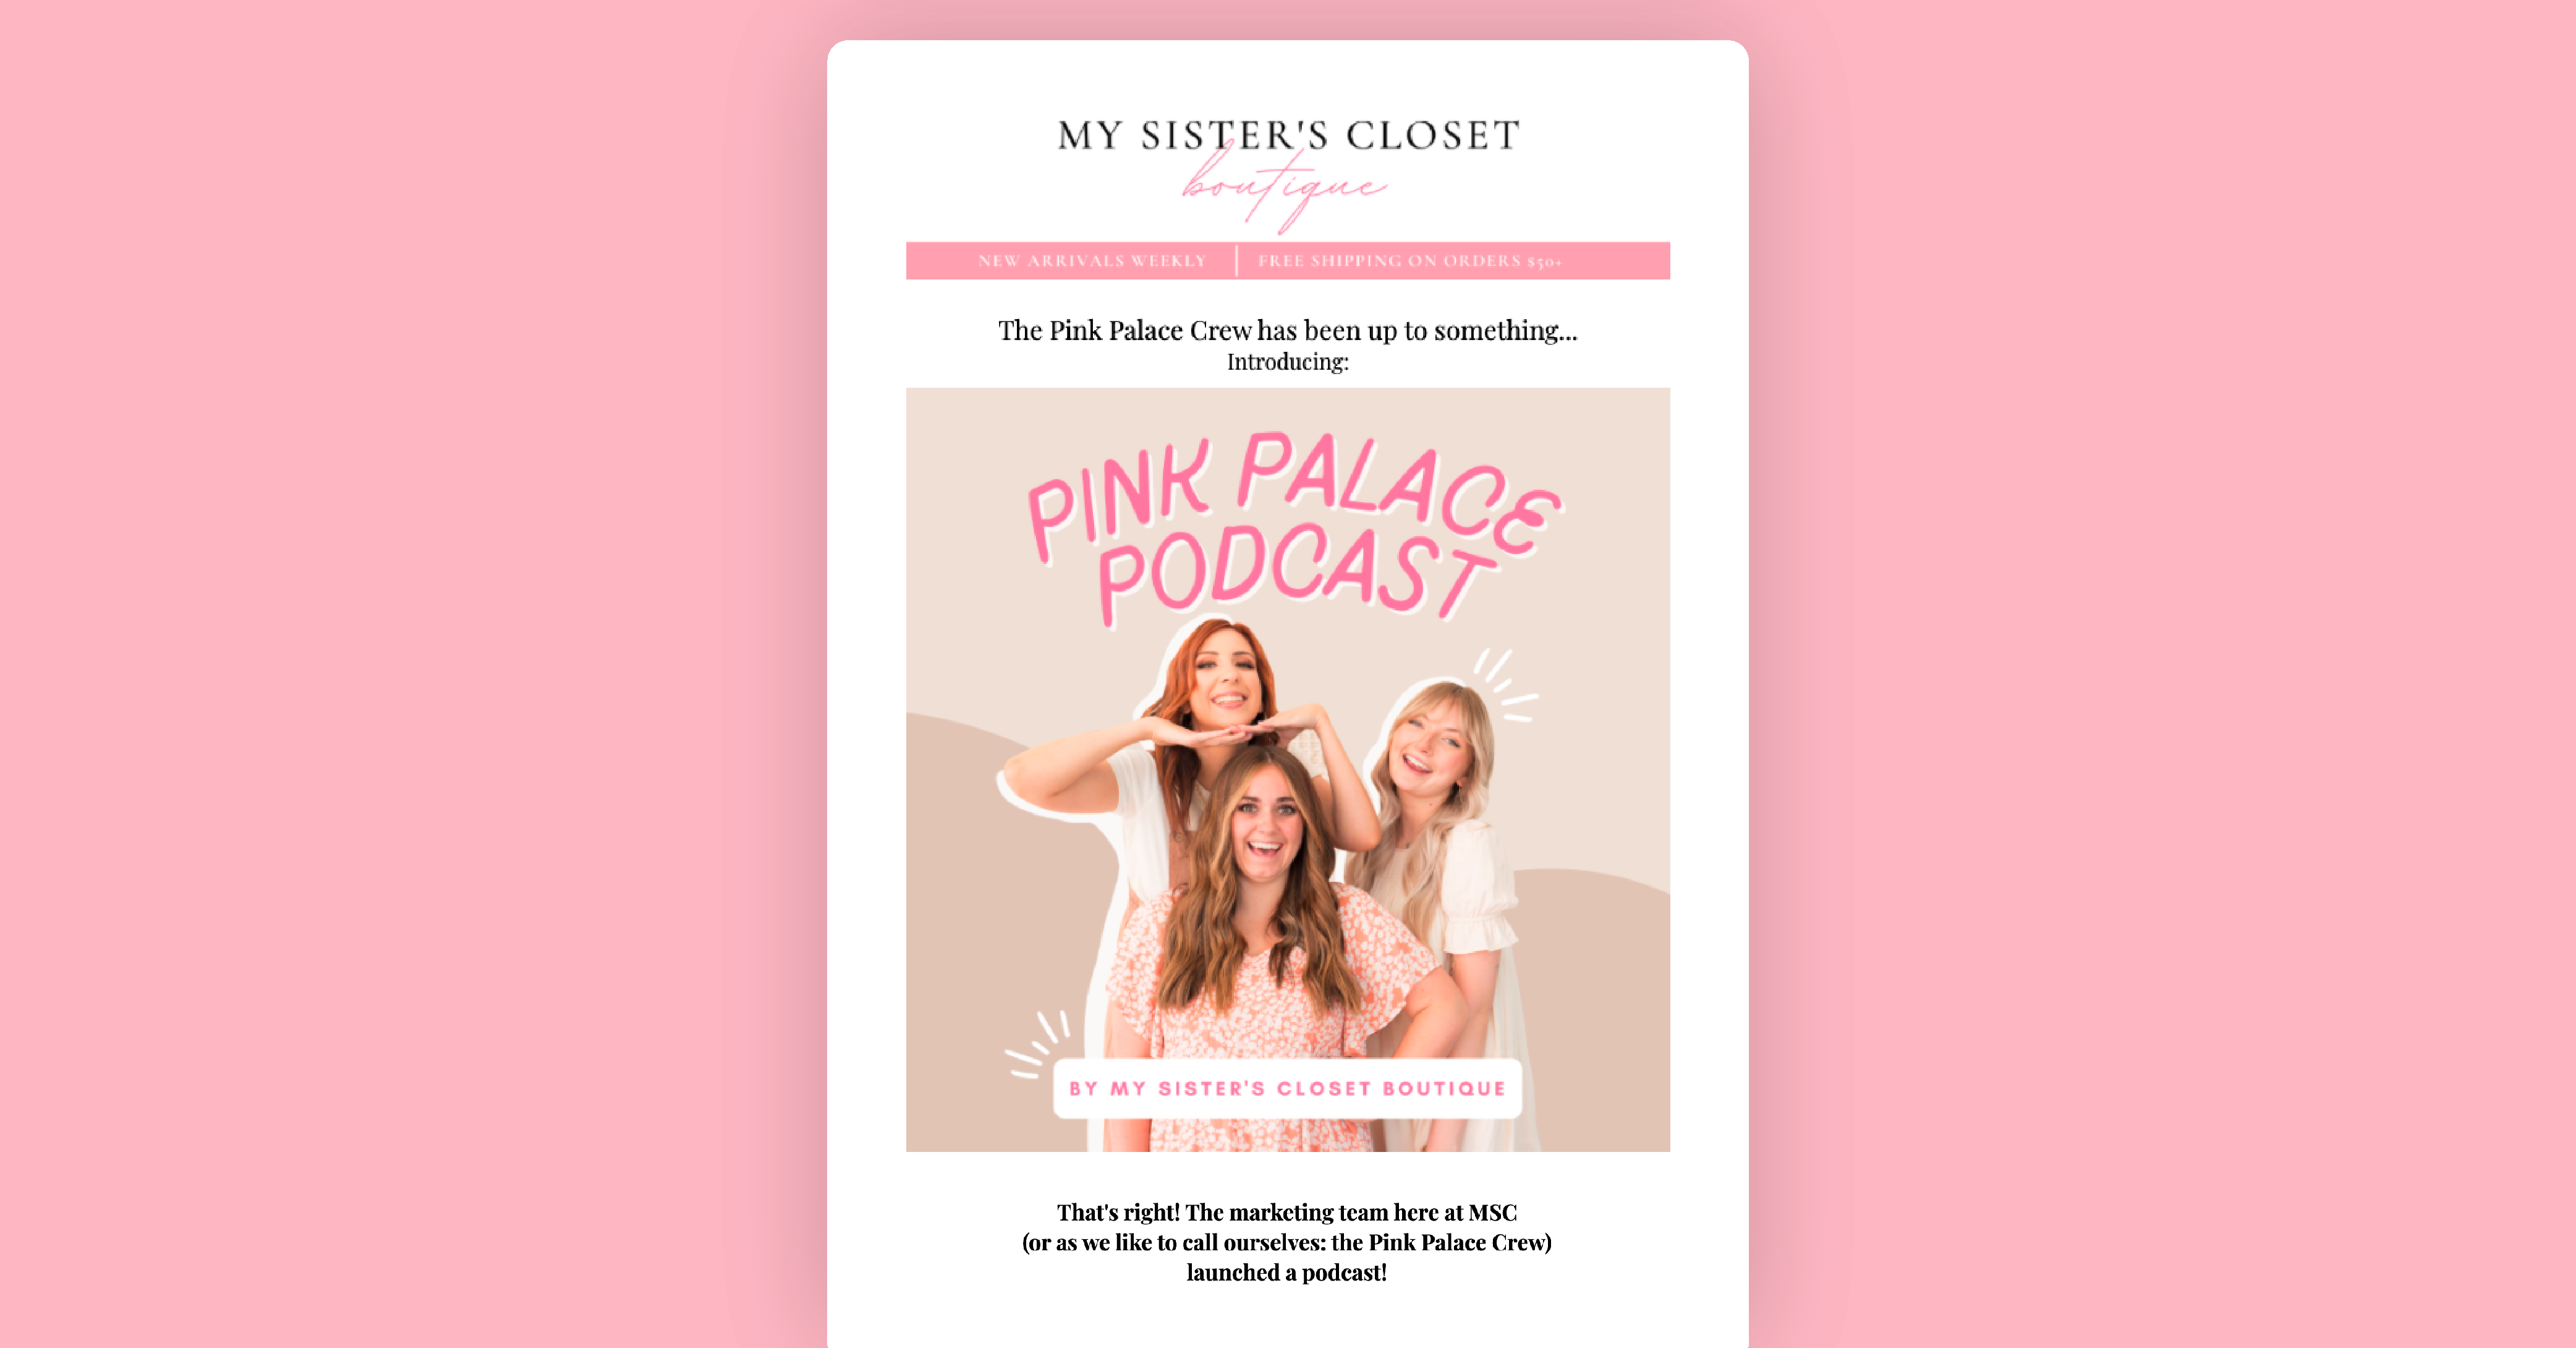 My Sister's Closet's podcast announcement email campaign placed on a pink banner.